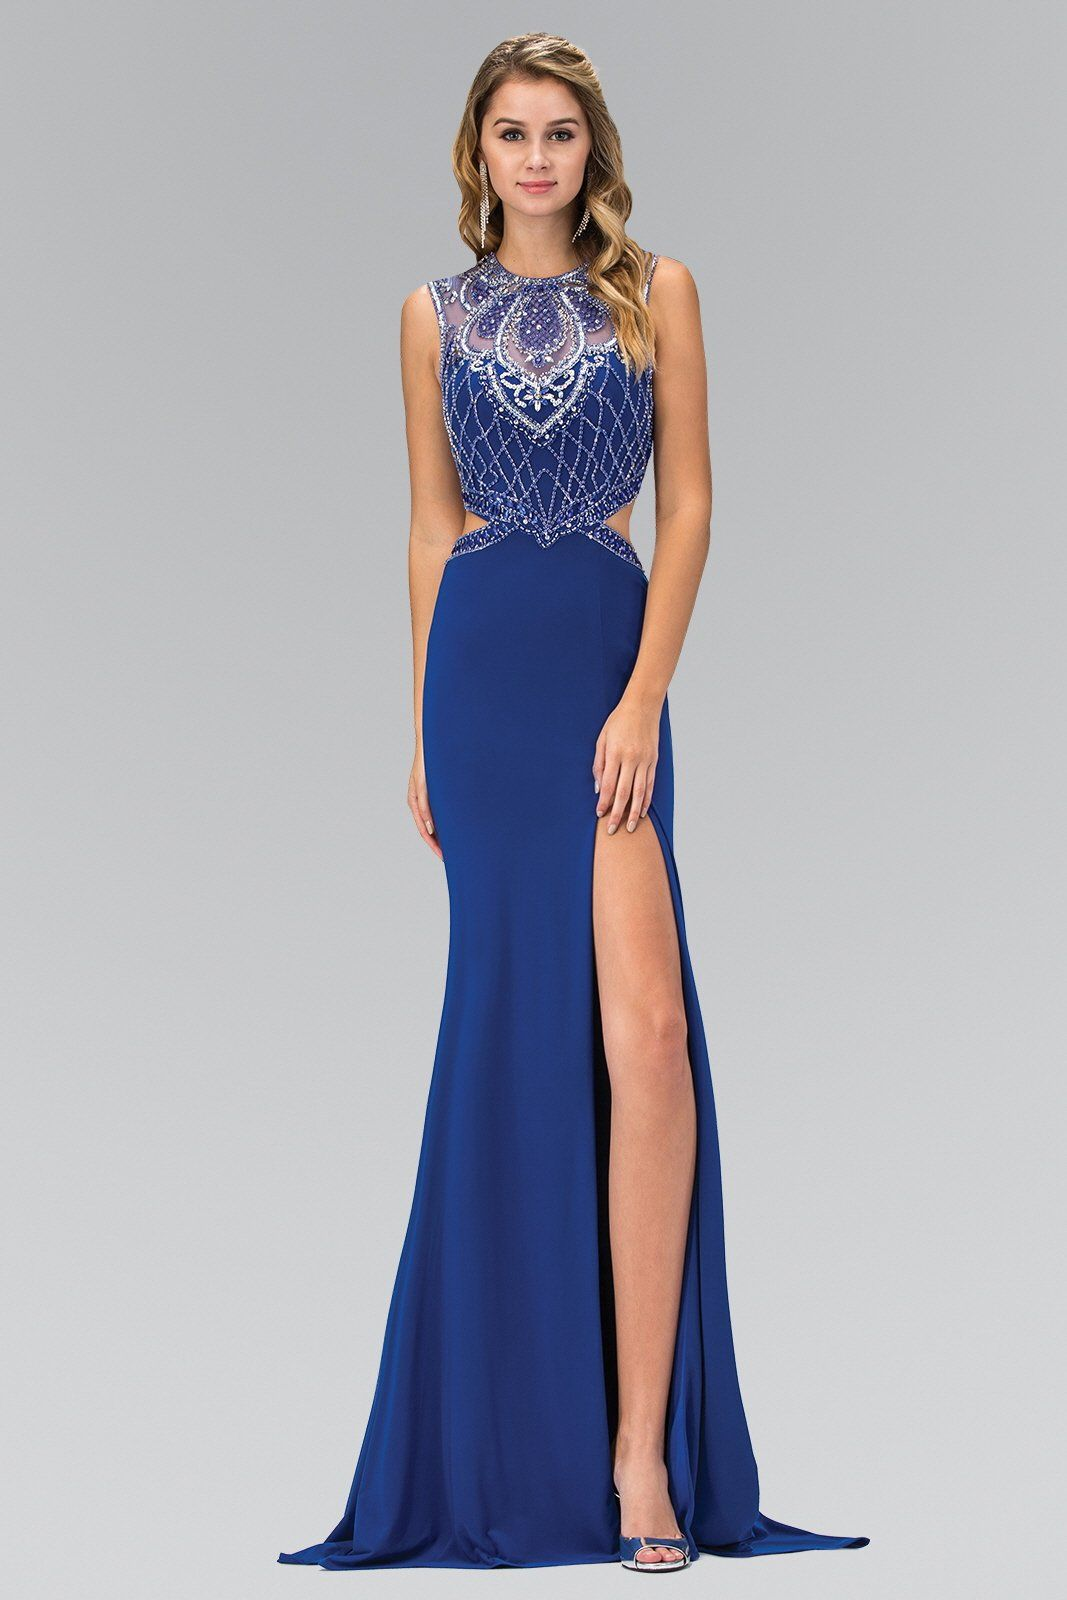 Gls jersey gown with slit cut out sides illusion beaded